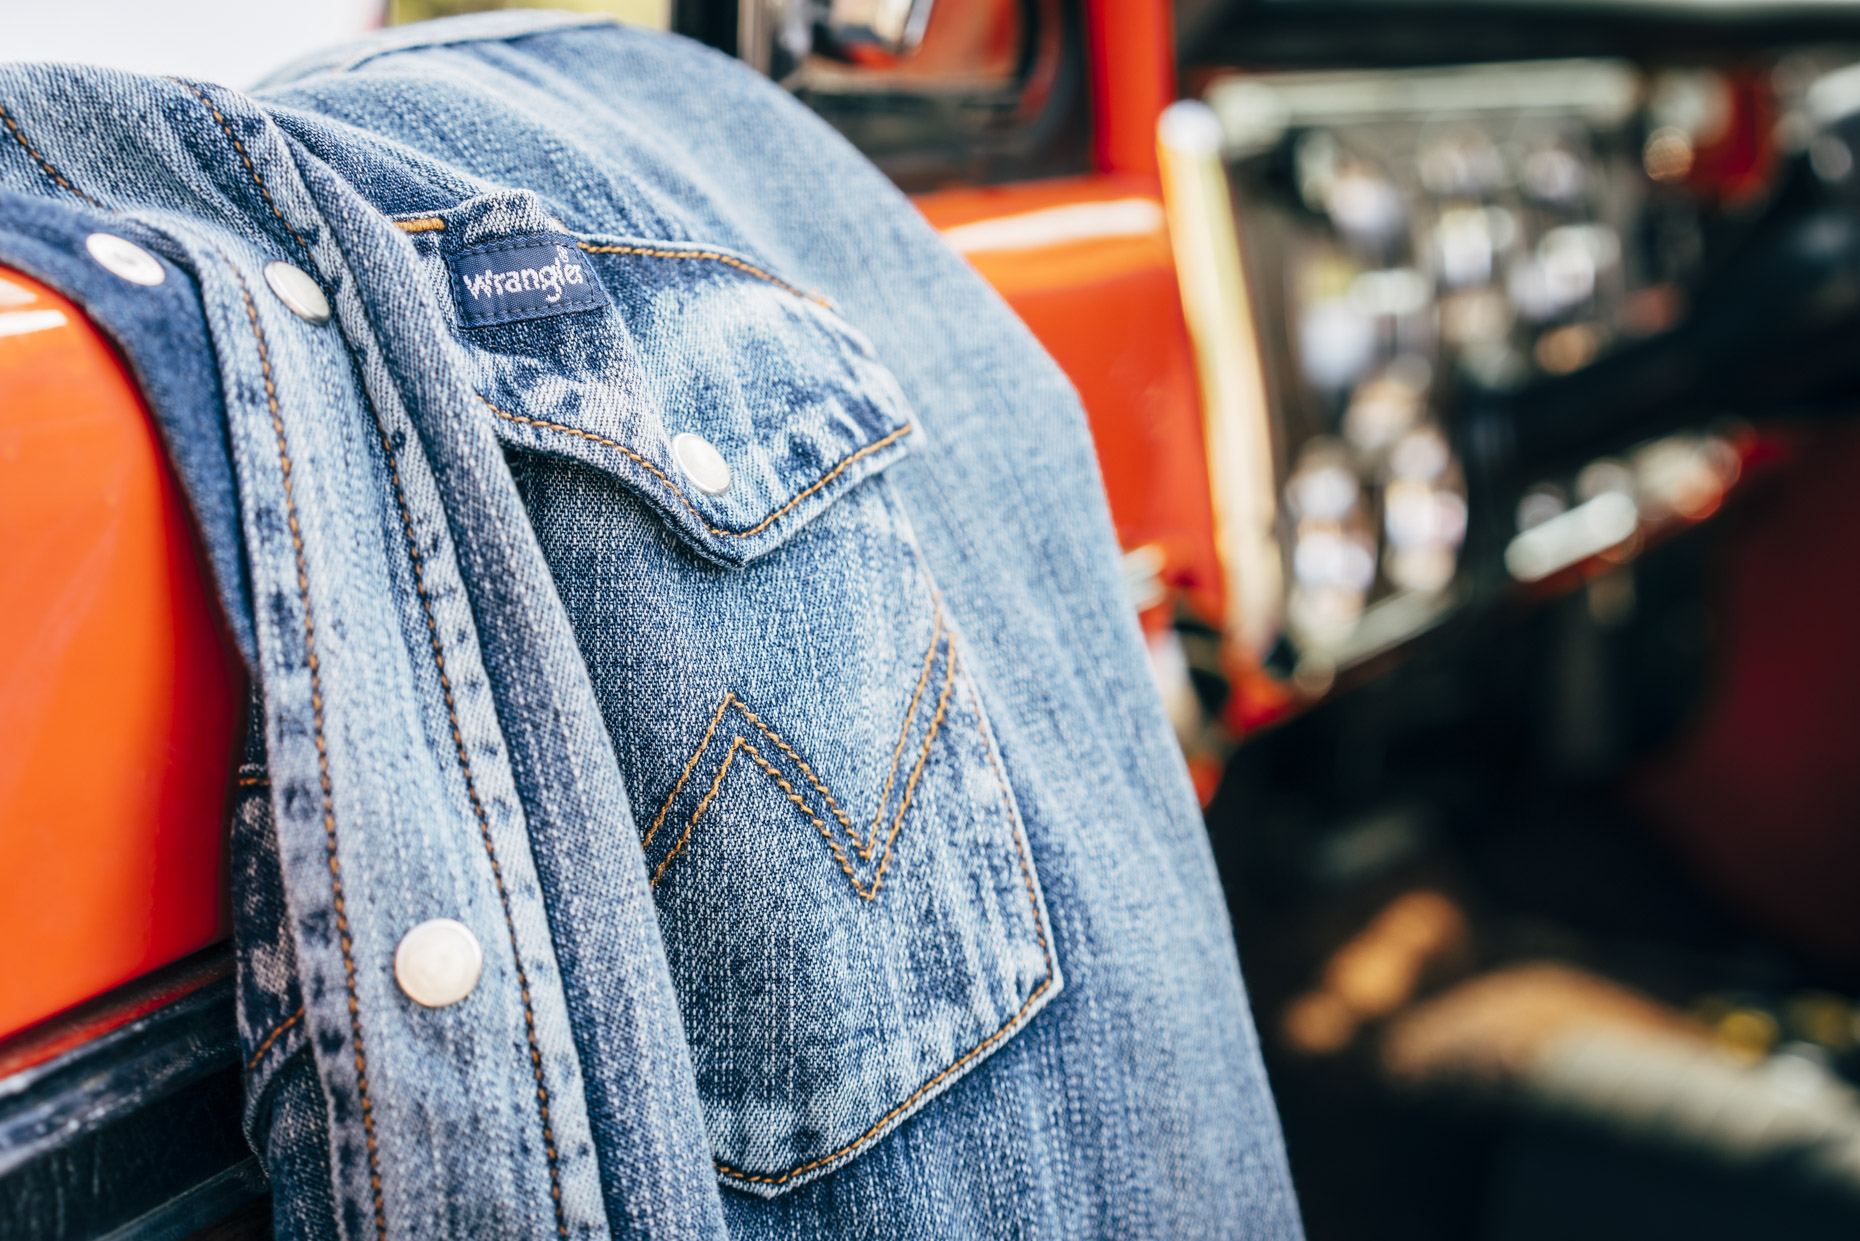 Close up of Wrangler Denim shirt hanging on truck door